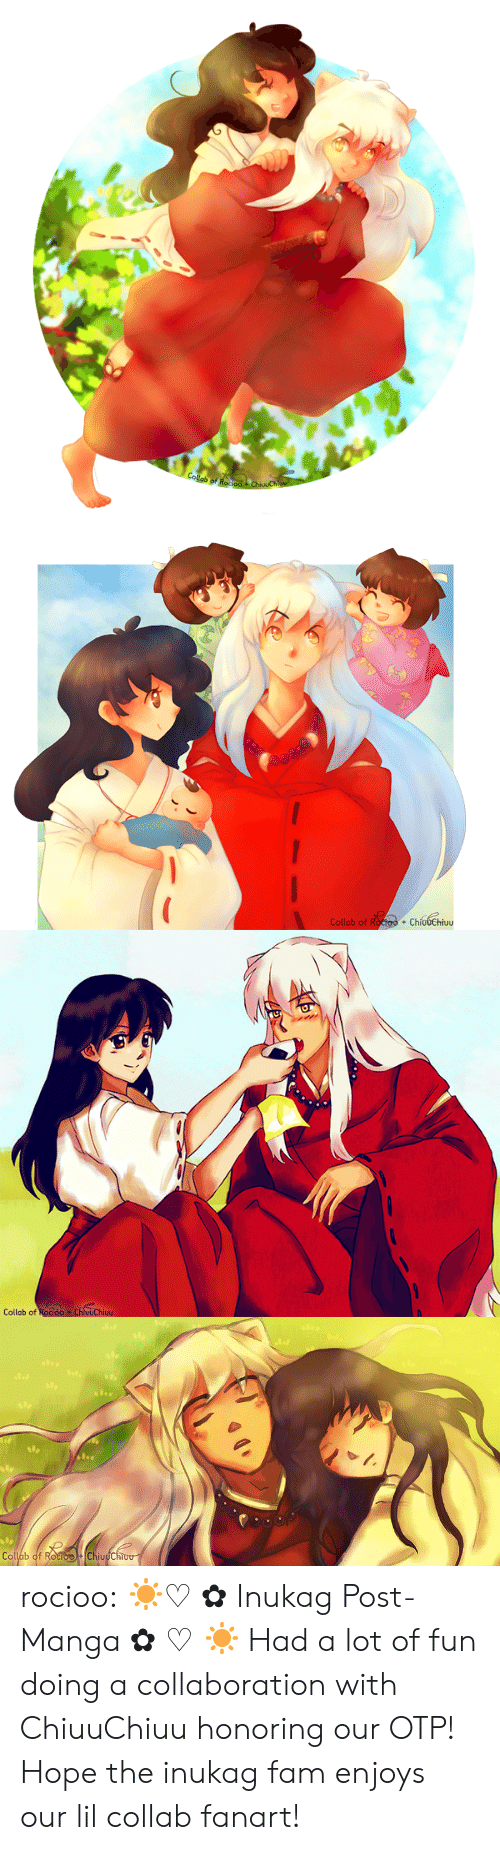 collaboration: Collab of Roo  ChivuChi   Collab of Roctoo + ChíudChiuu  +   Collab of Rocioo ChluuChiuu   Op  Collab of RocioChiuuChiou rocioo:  ☀♡✿Inukag Post-Manga✿♡☀ Had a lot of fun doing a collaboration with ChiuuChiuuhonoring our OTP! Hope the inukag fam enjoys our lil collab fanart!